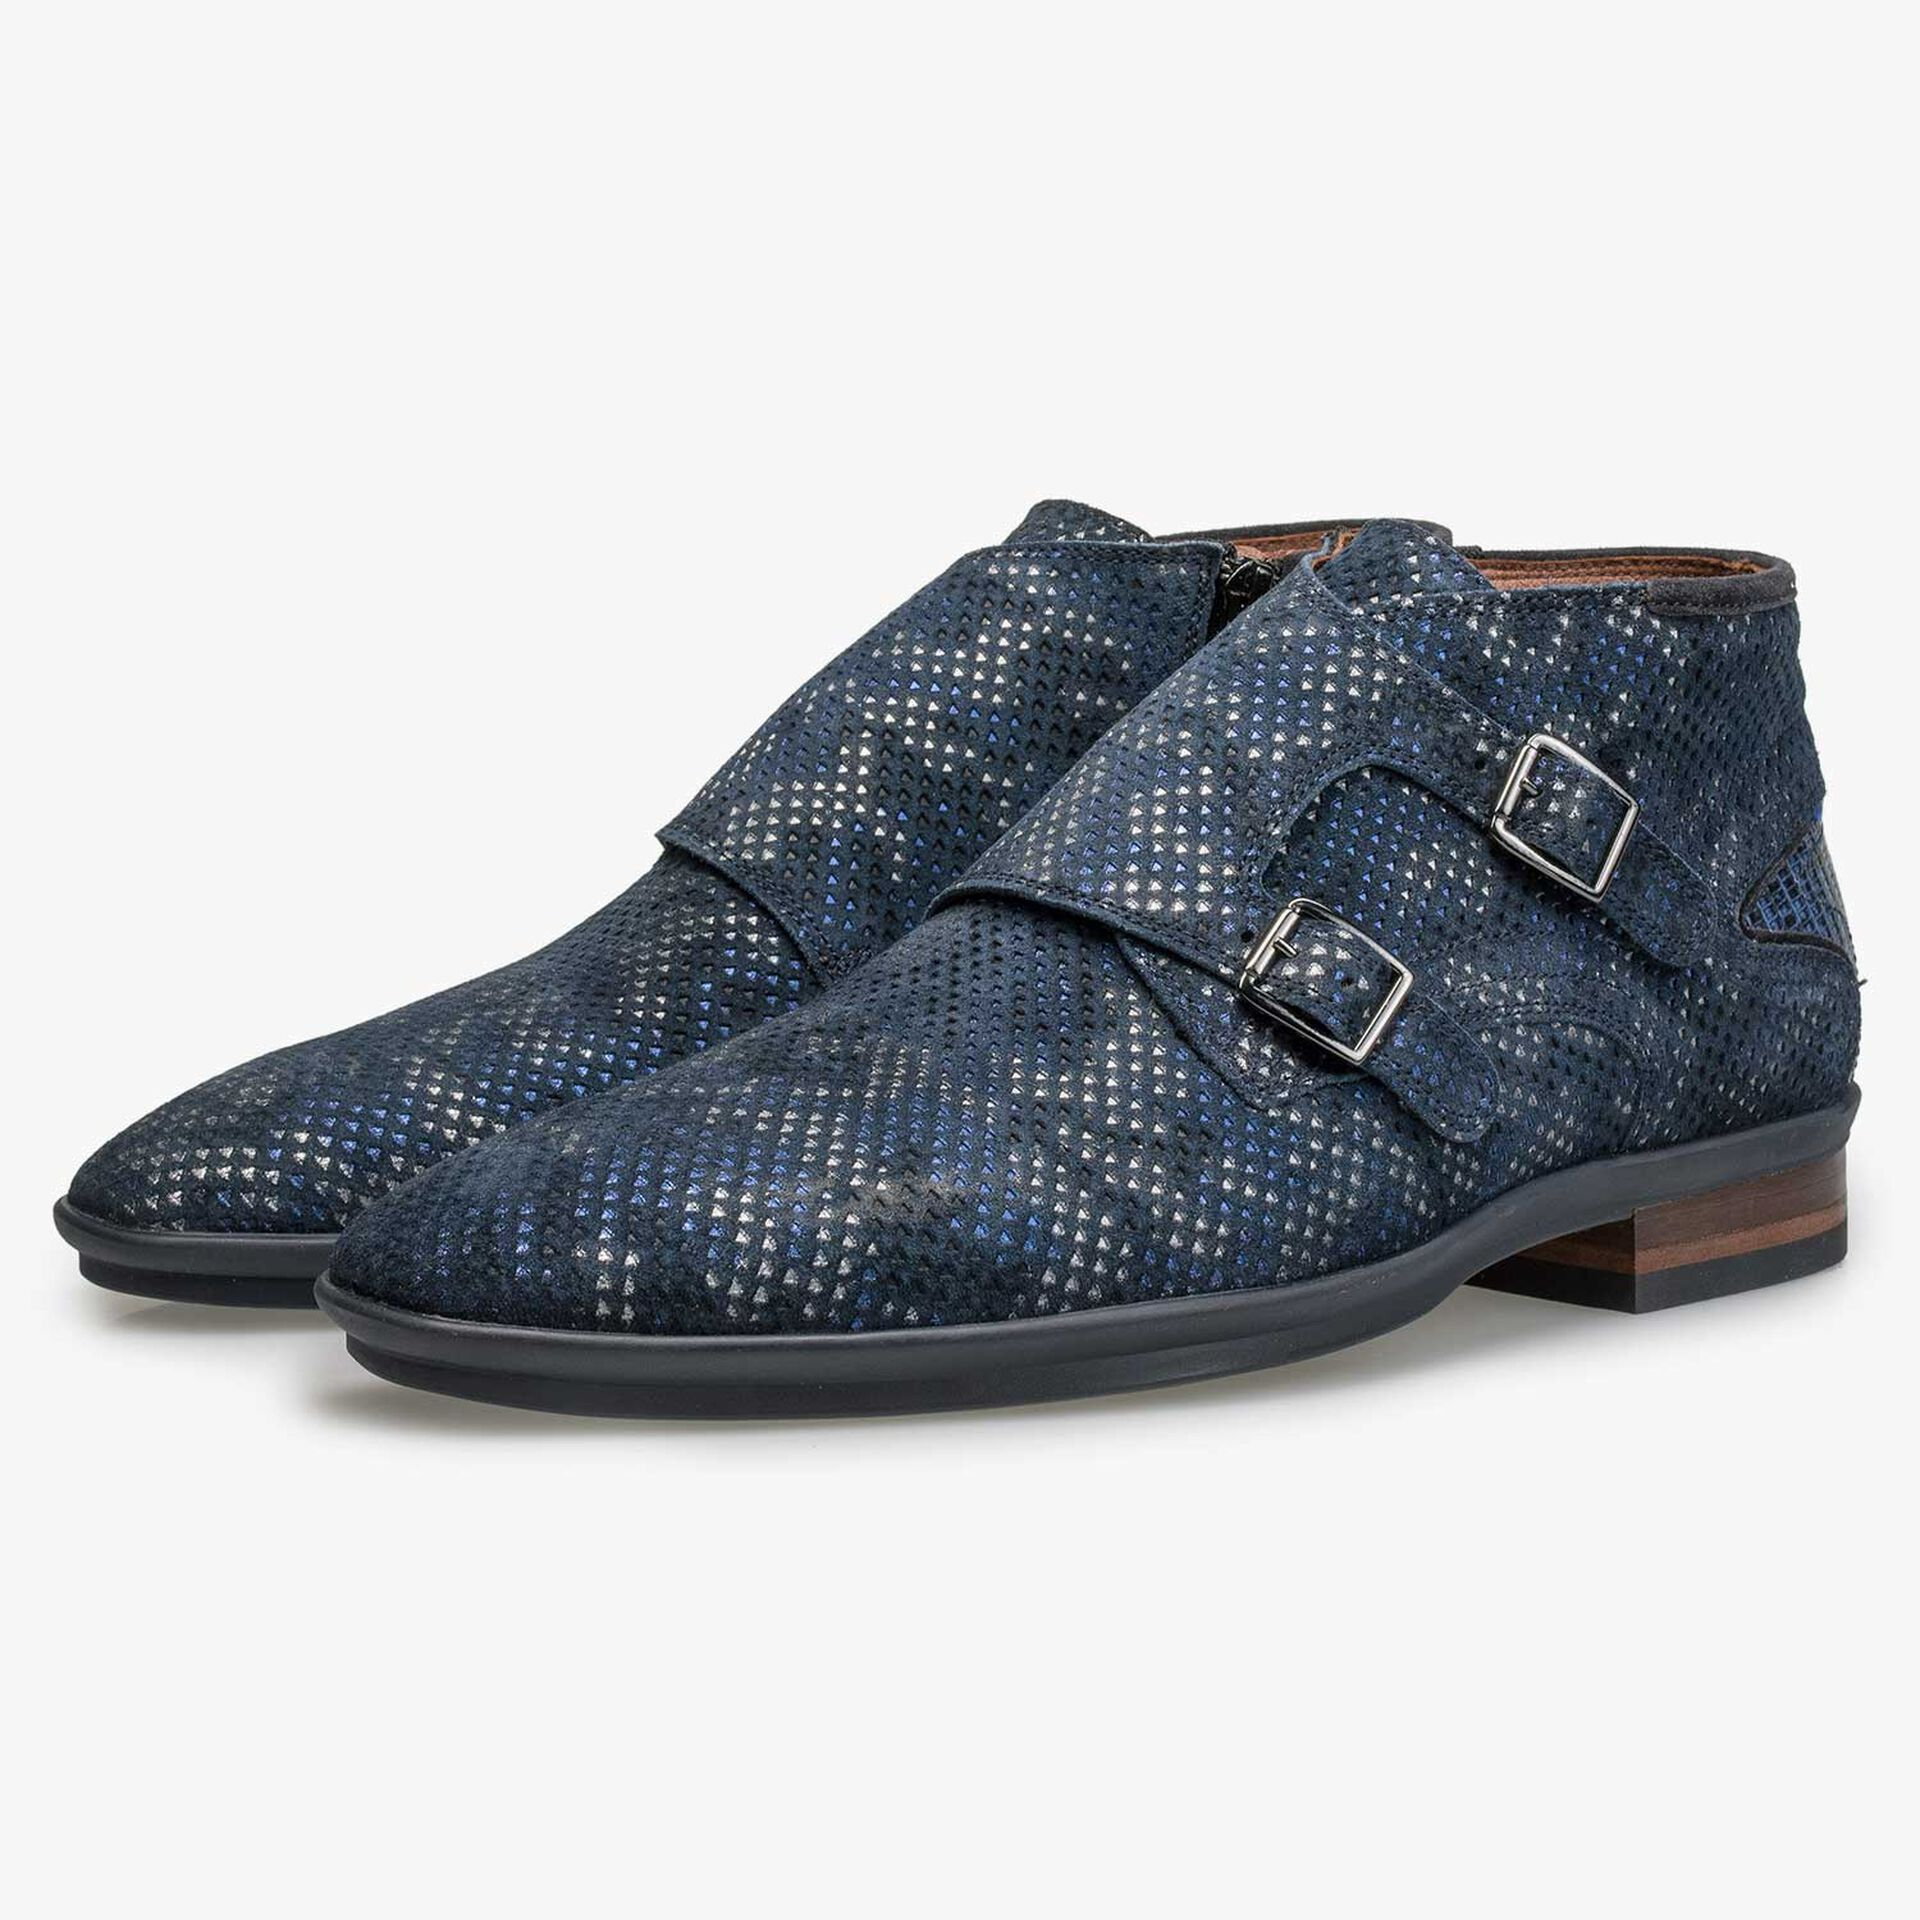 Mid-high patterned buckled shoe